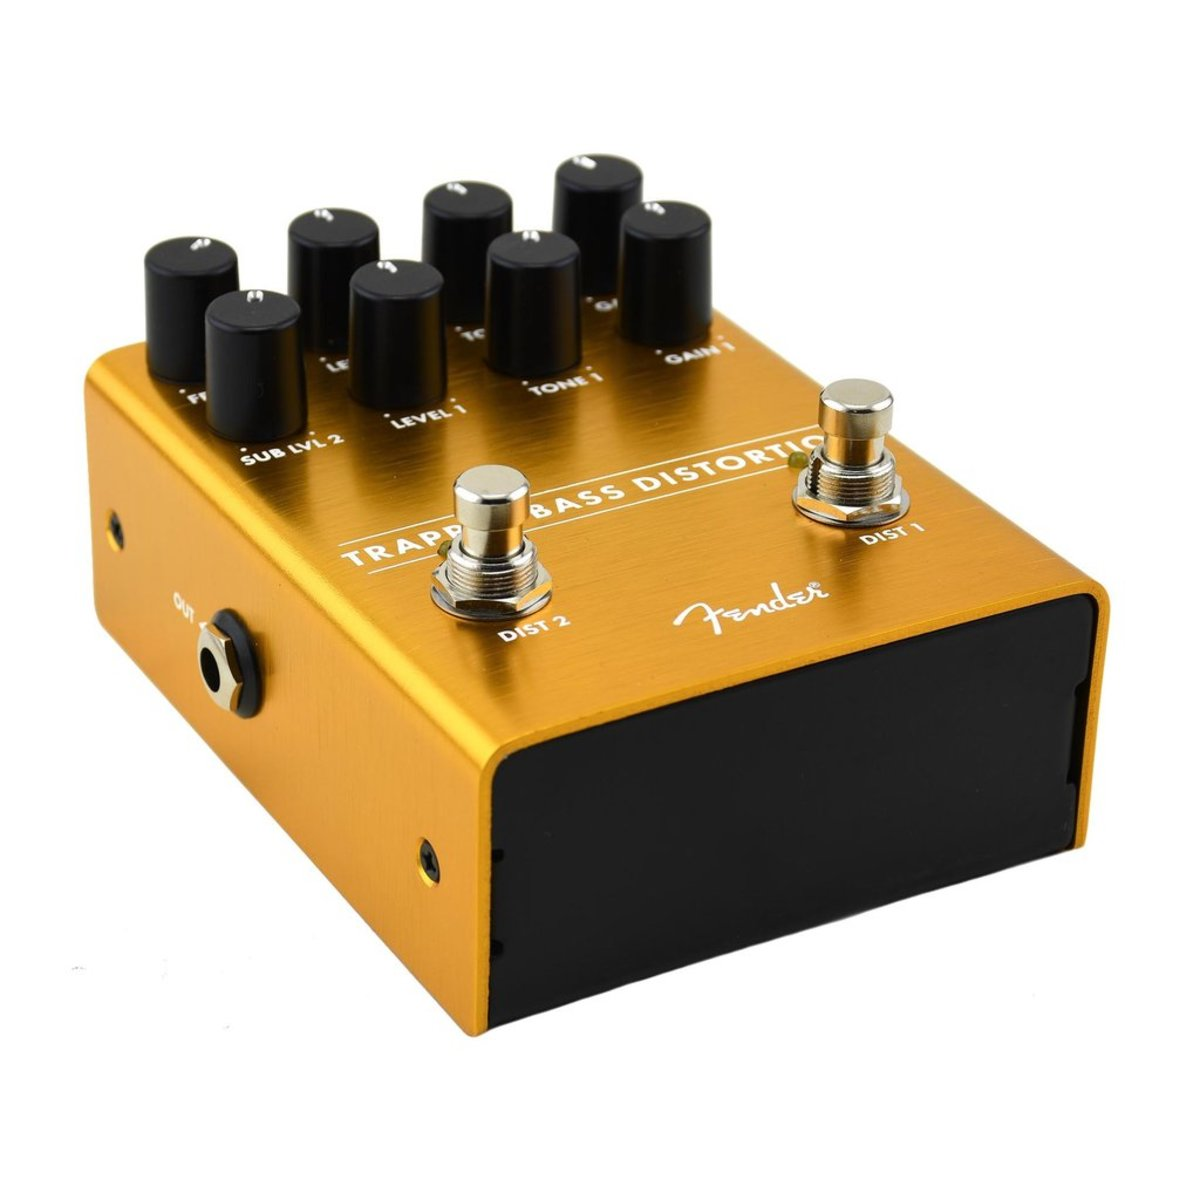 fender-trapper-bass-distortion-pedal_5_1024x